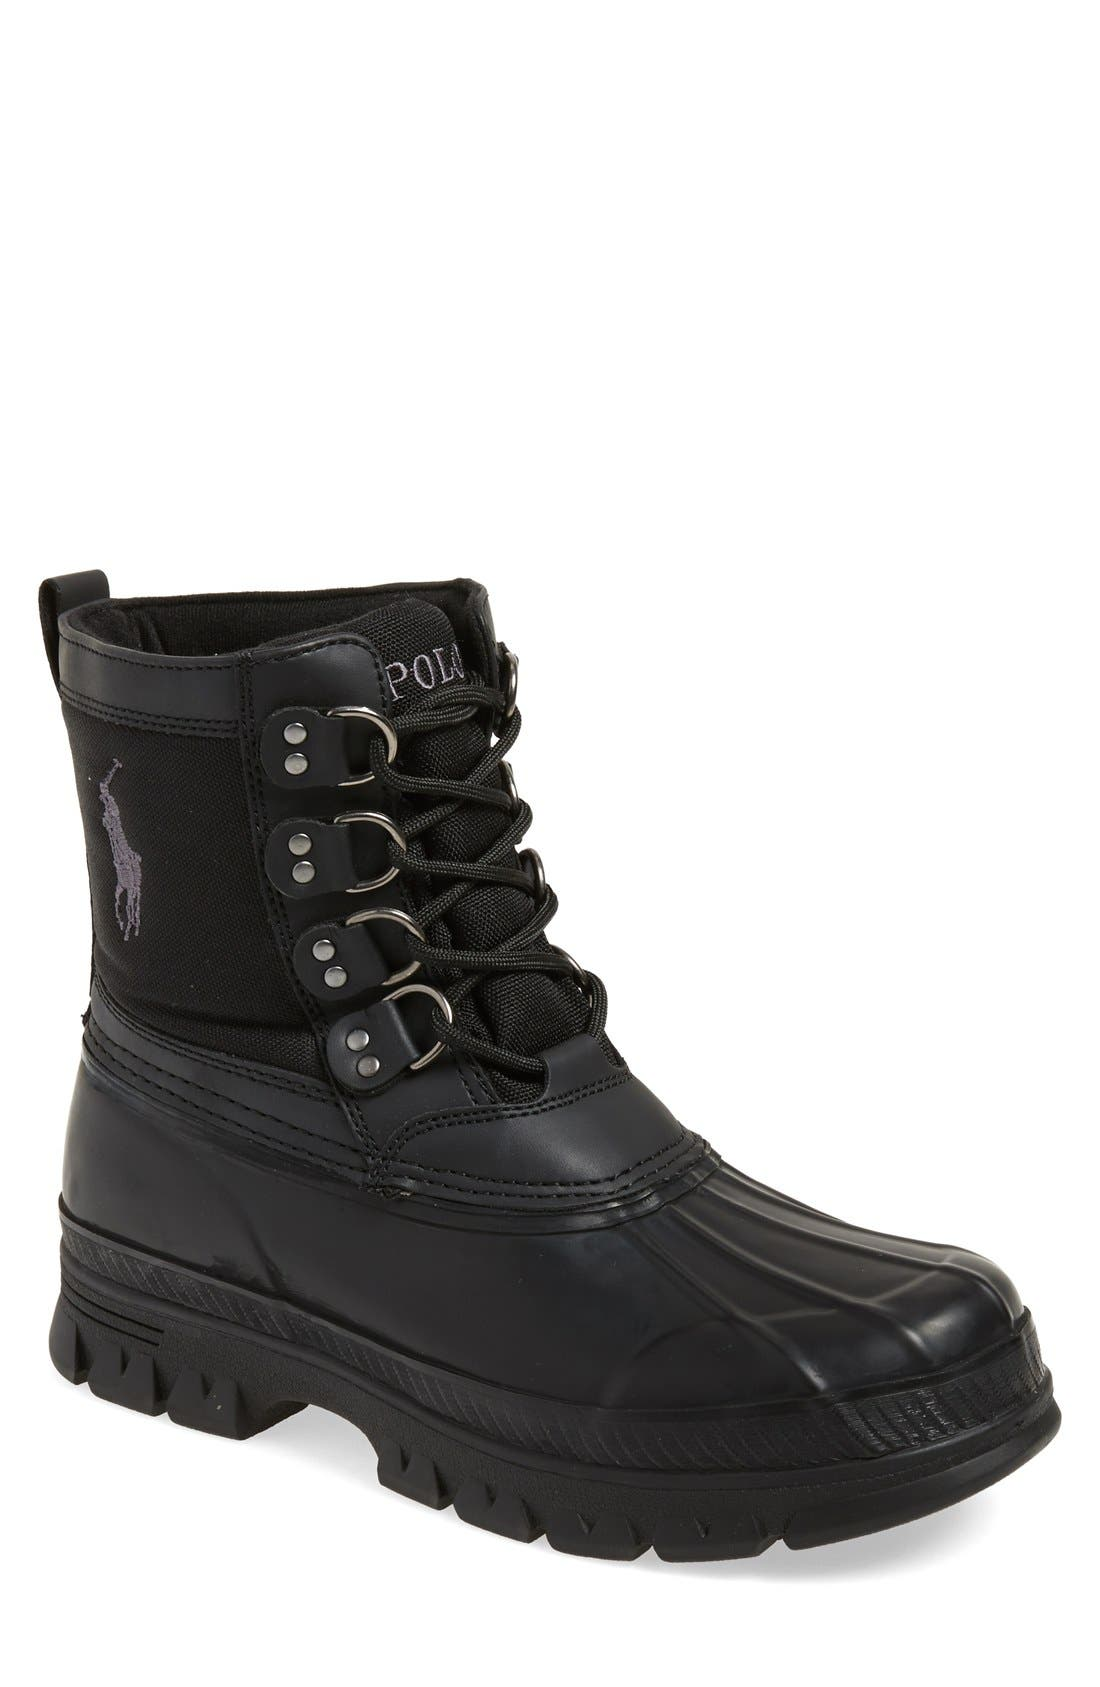 Alternate Image 1 Selected - Polo Ralph Lauren 'Crestwick' Tall Boot